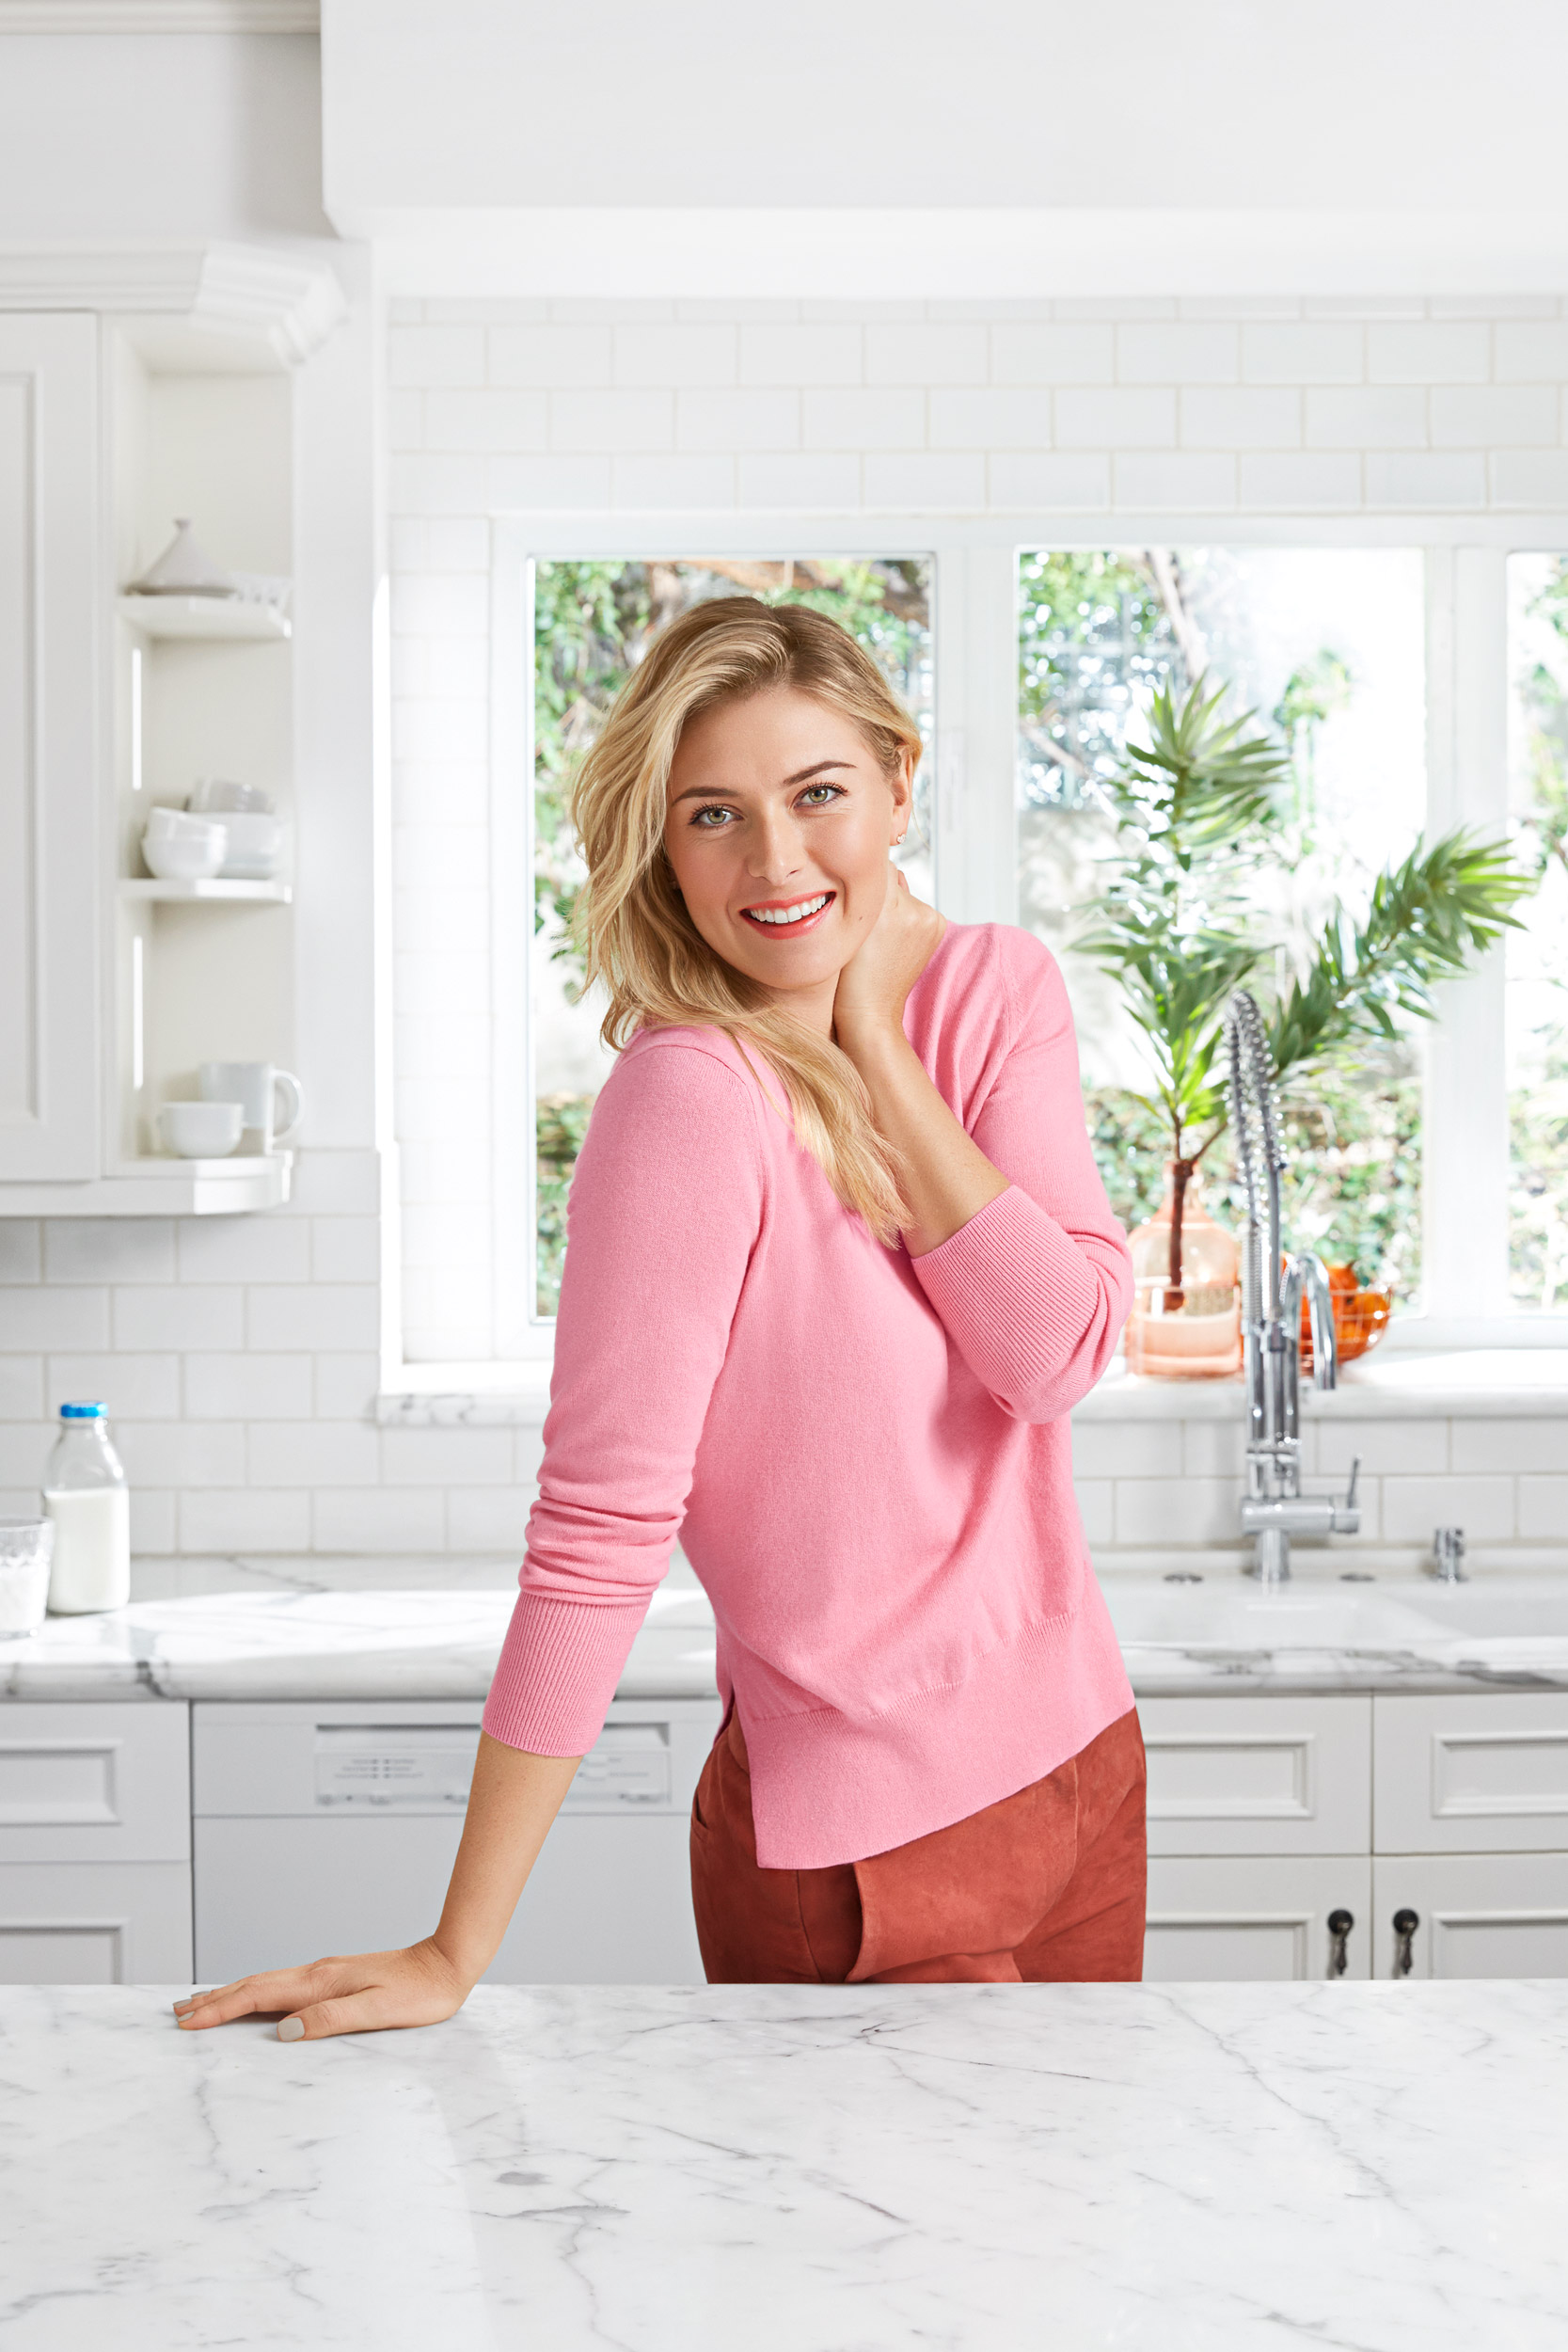 Maria Sharapova smiling in a kitchen. Kim Genevieve Los Angeles Portrait Photographer